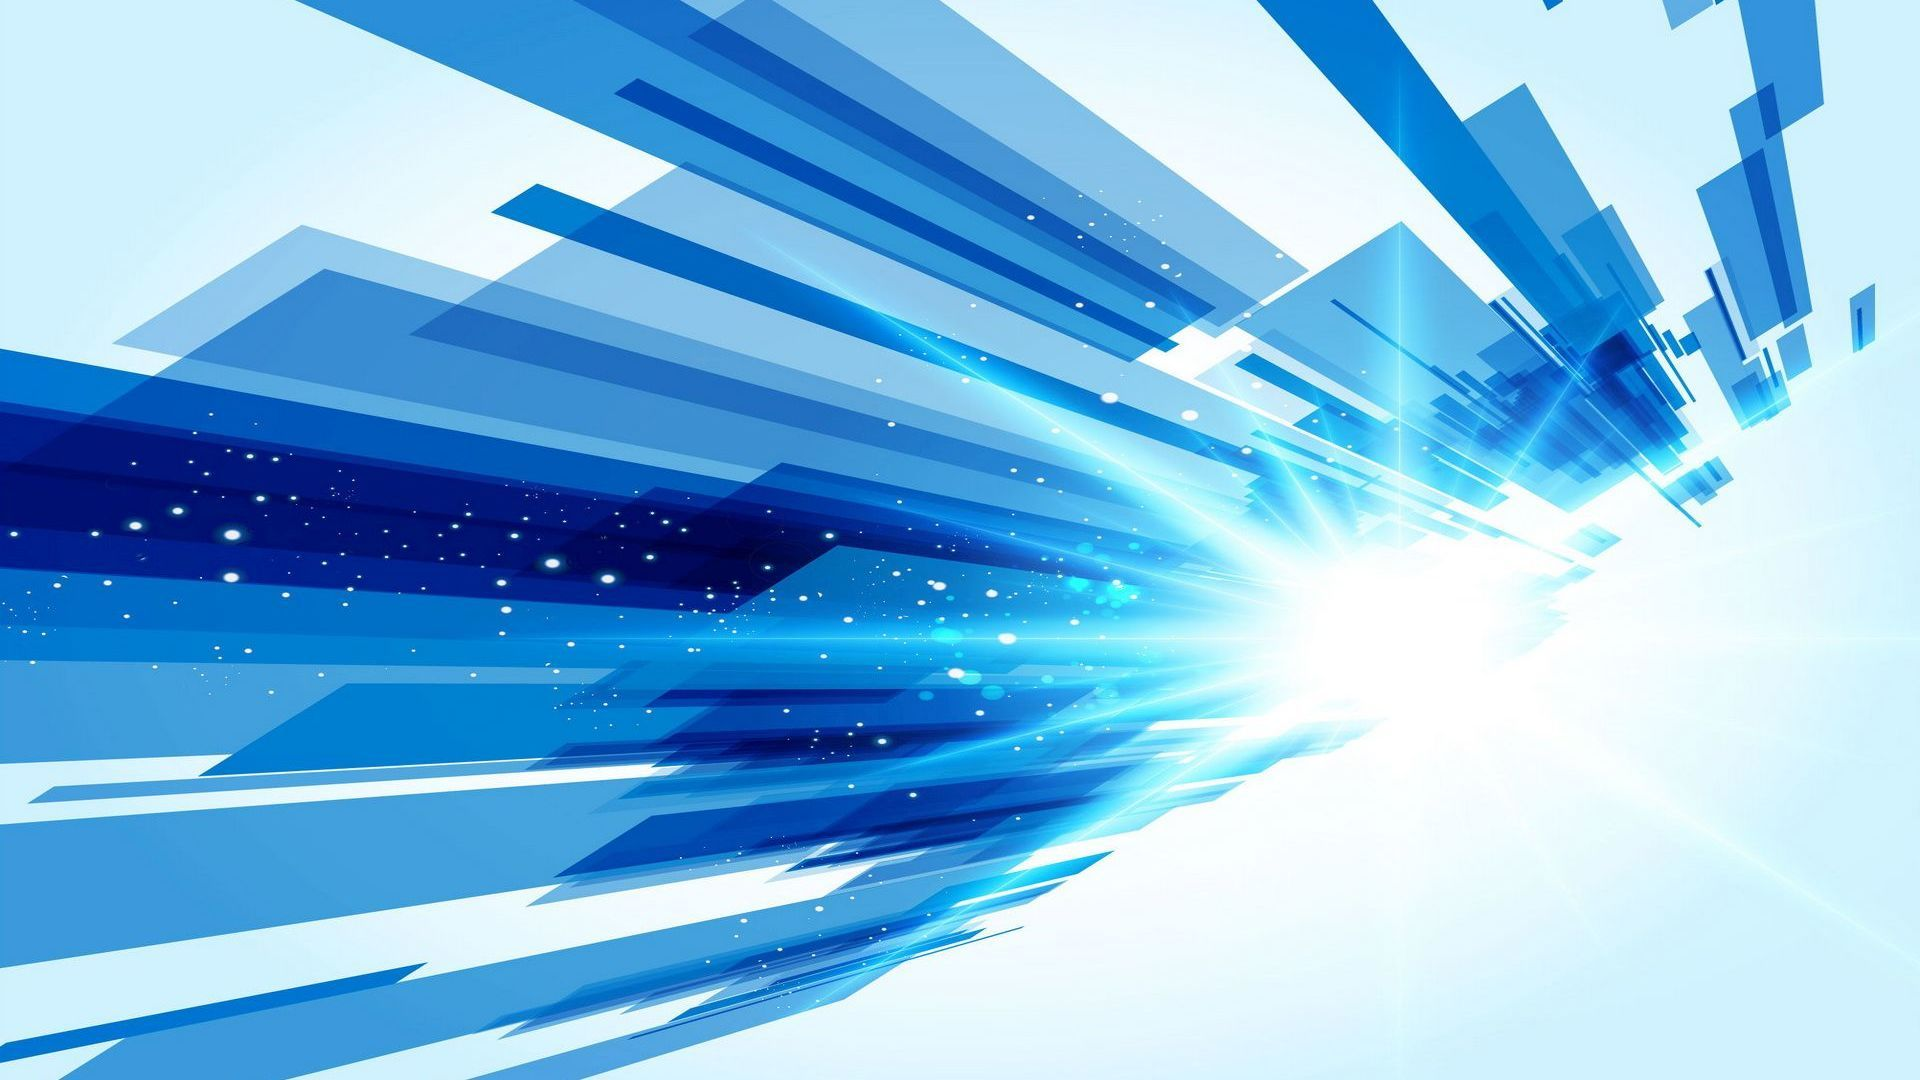 Cool Vector background picture hd